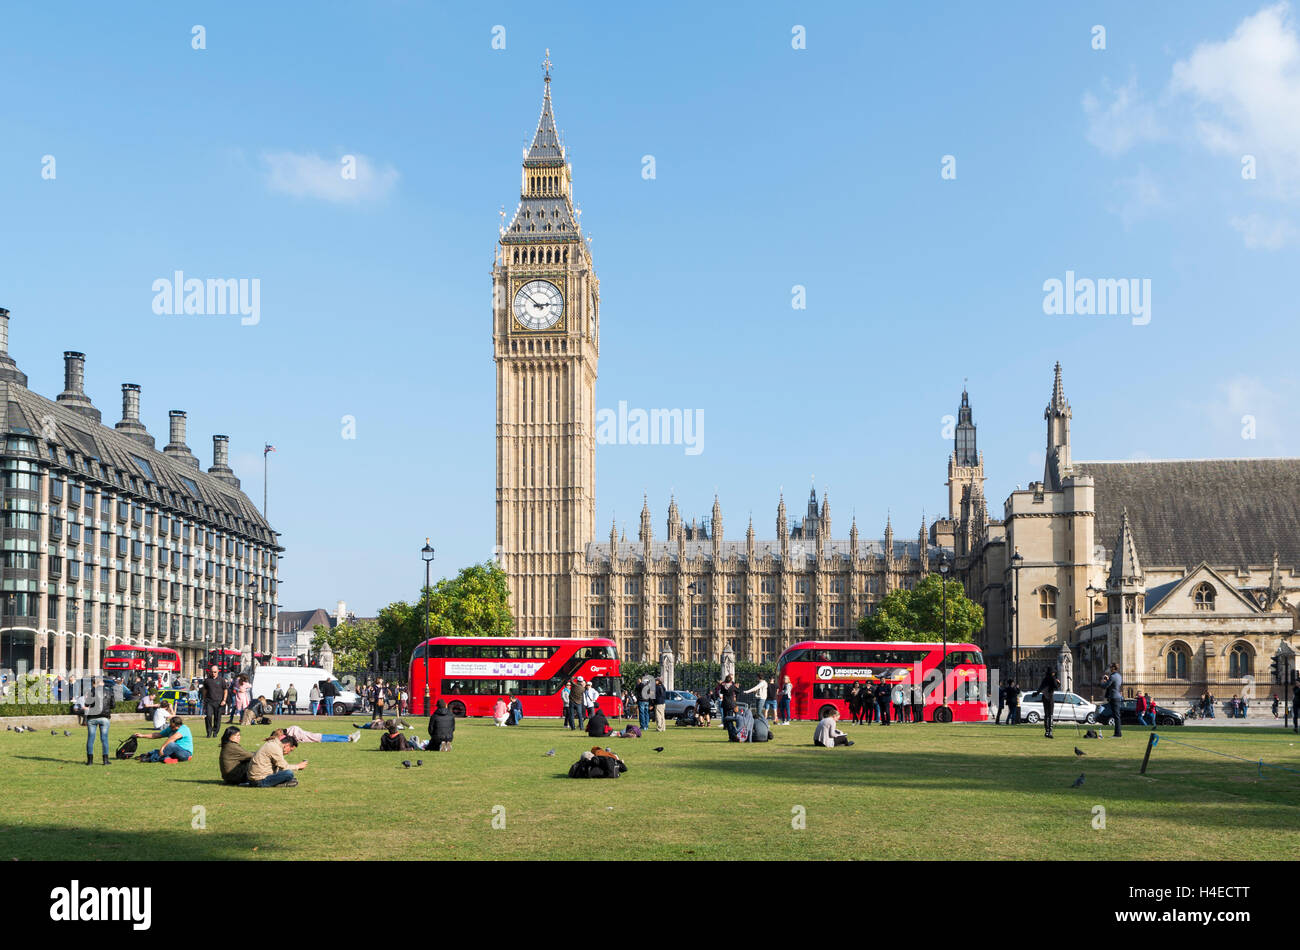 View across Parliament Square Garden towards Big Ben and the Palace of Westminster / Houses of Parliament with red - Stock Image